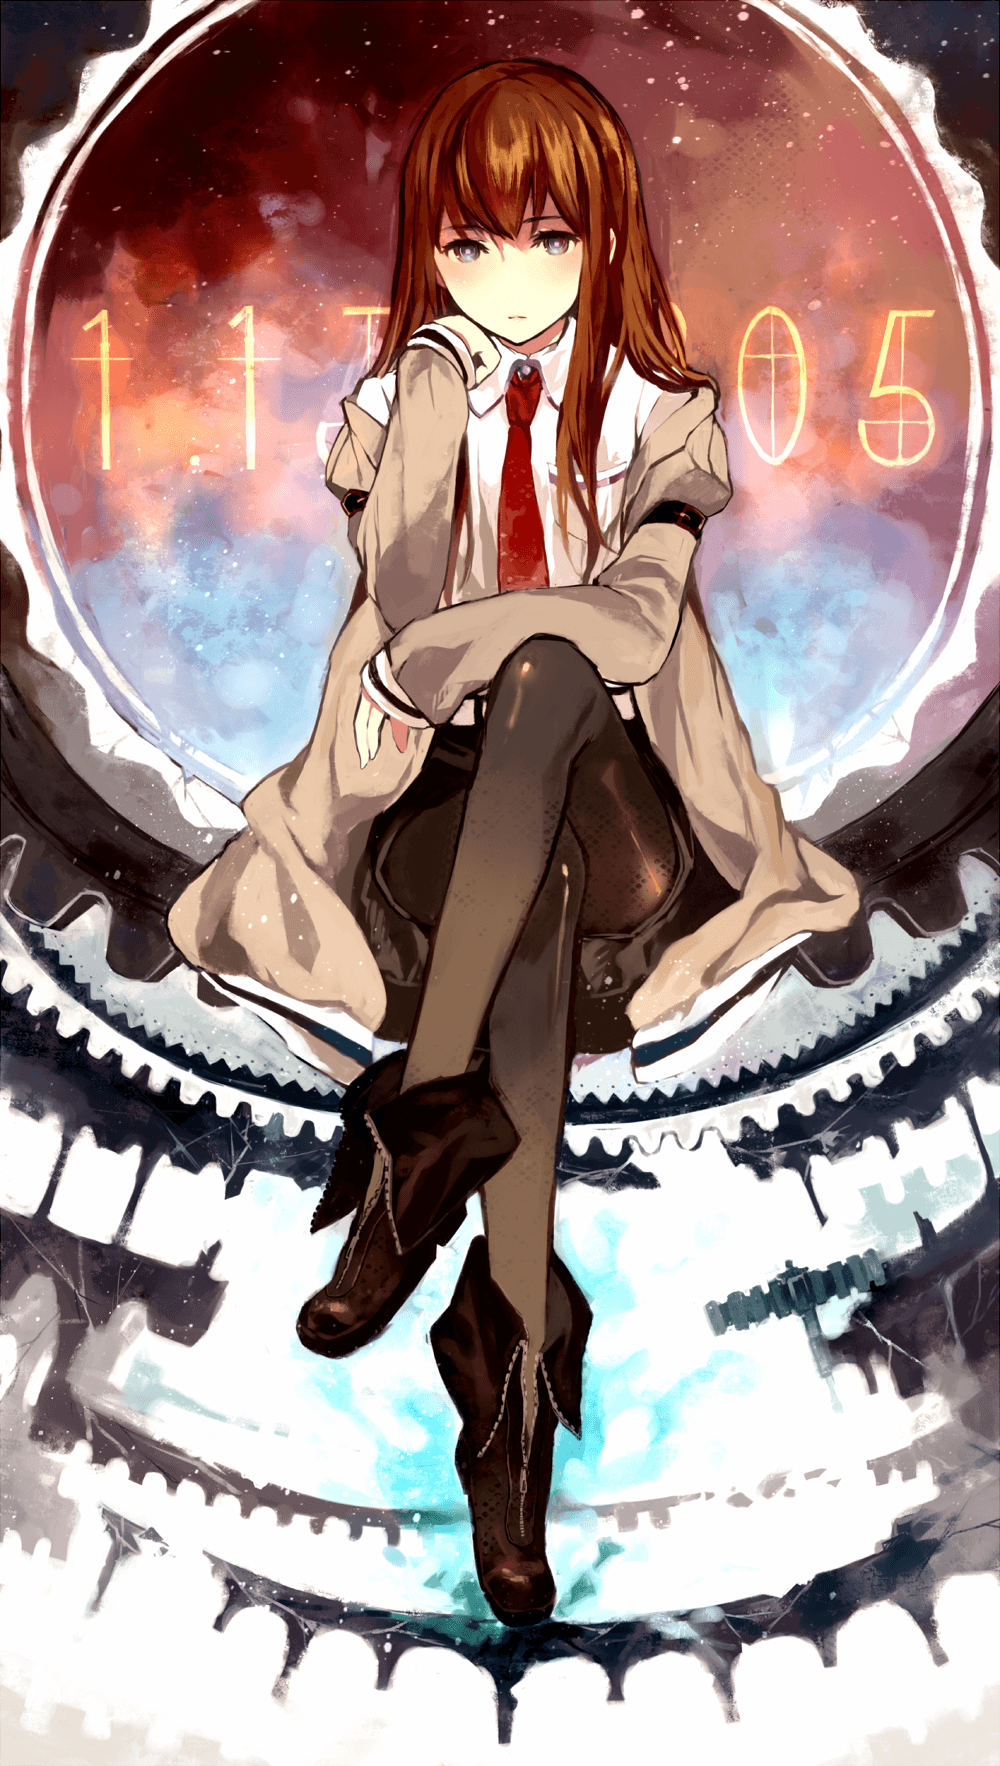 Steins;gate, Makise Kurisu